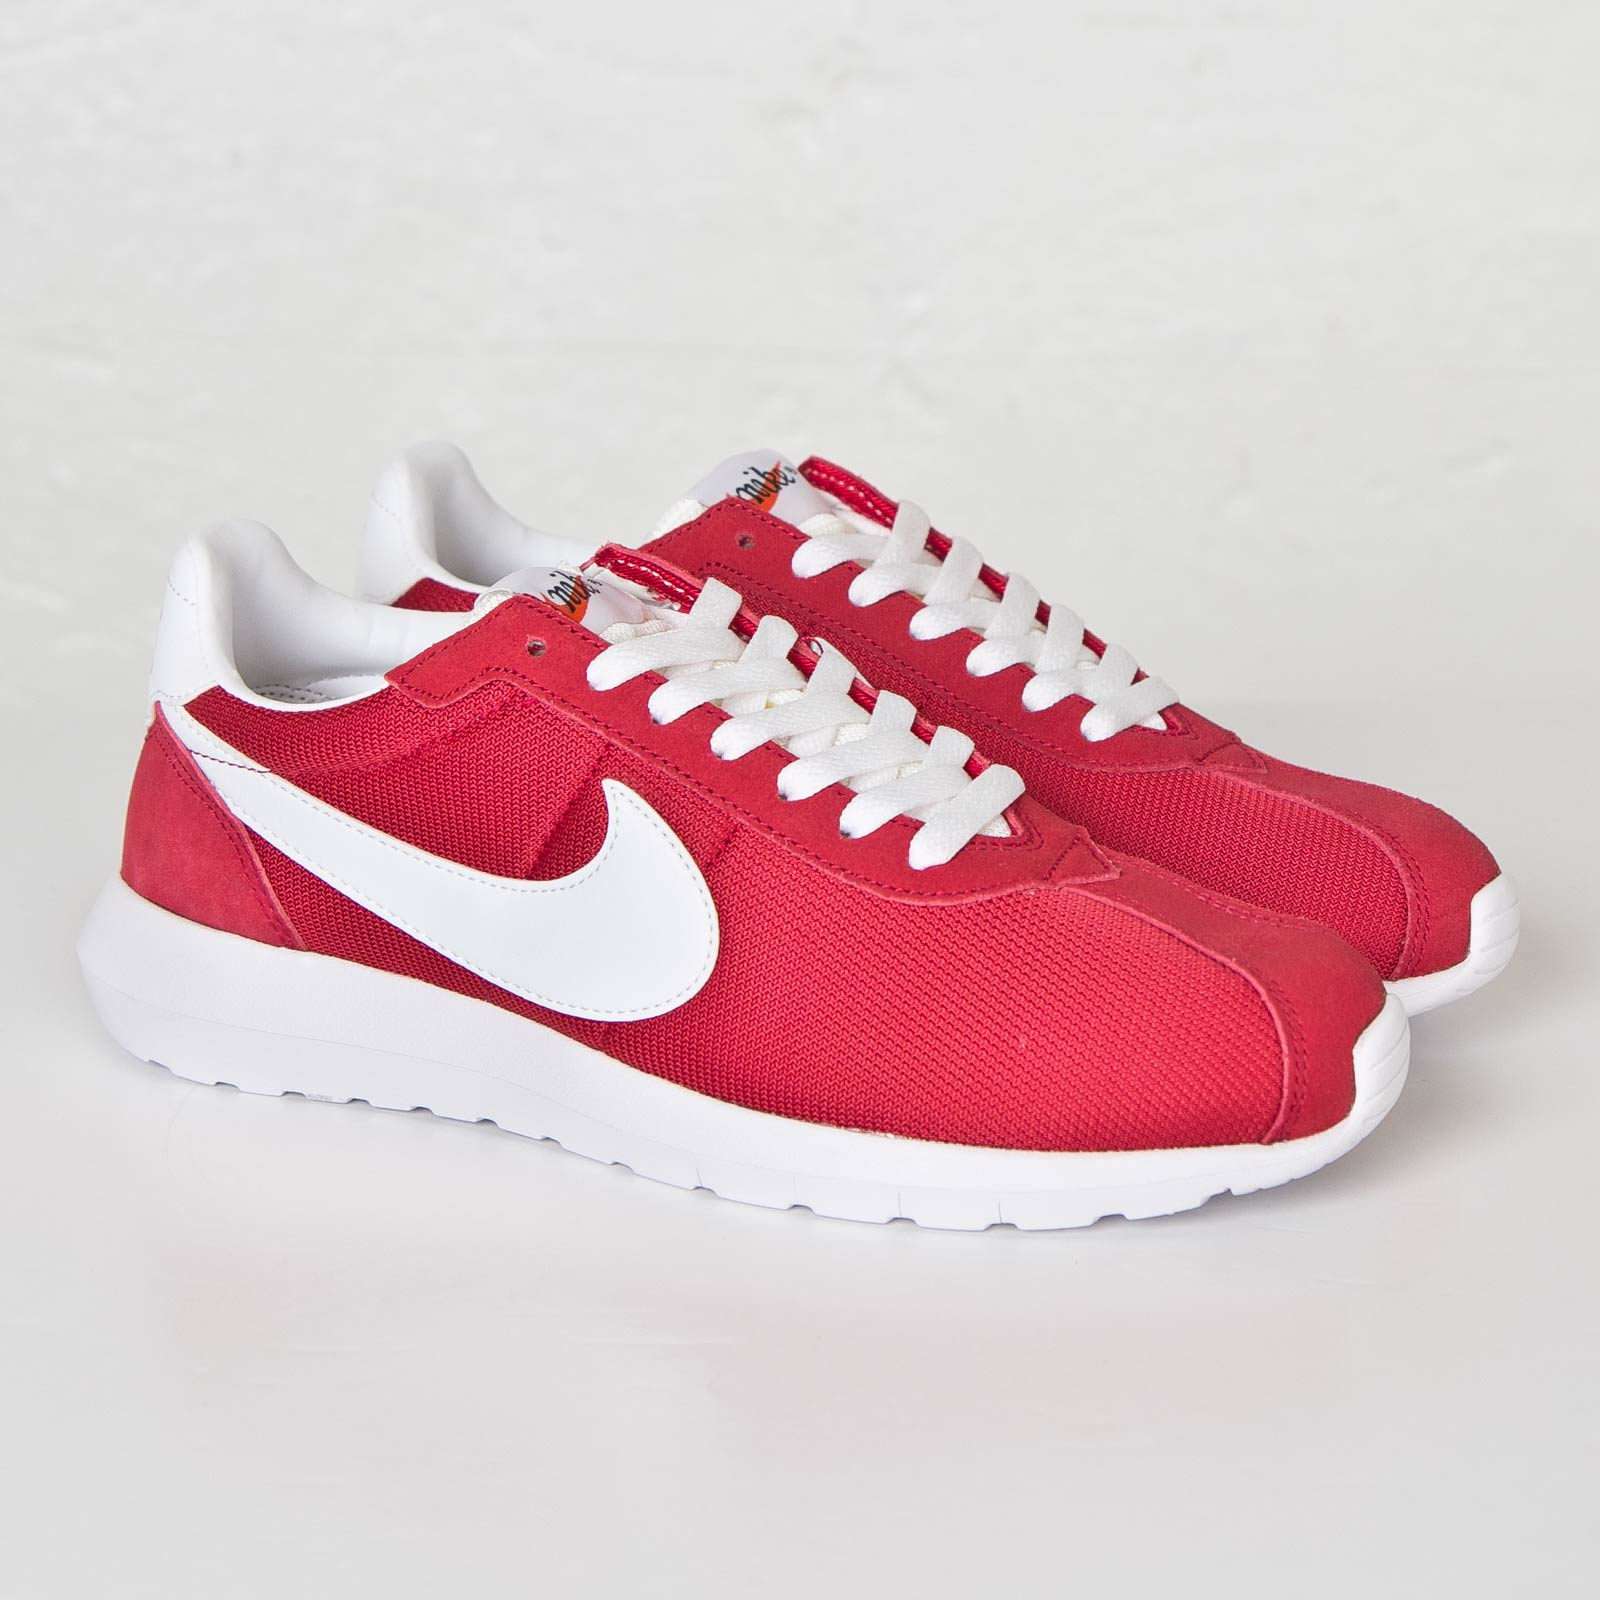 quality design a7a08 31819 Nike Roshe LD-1000 QS - 802022-601 - Sneakersnstuff ...